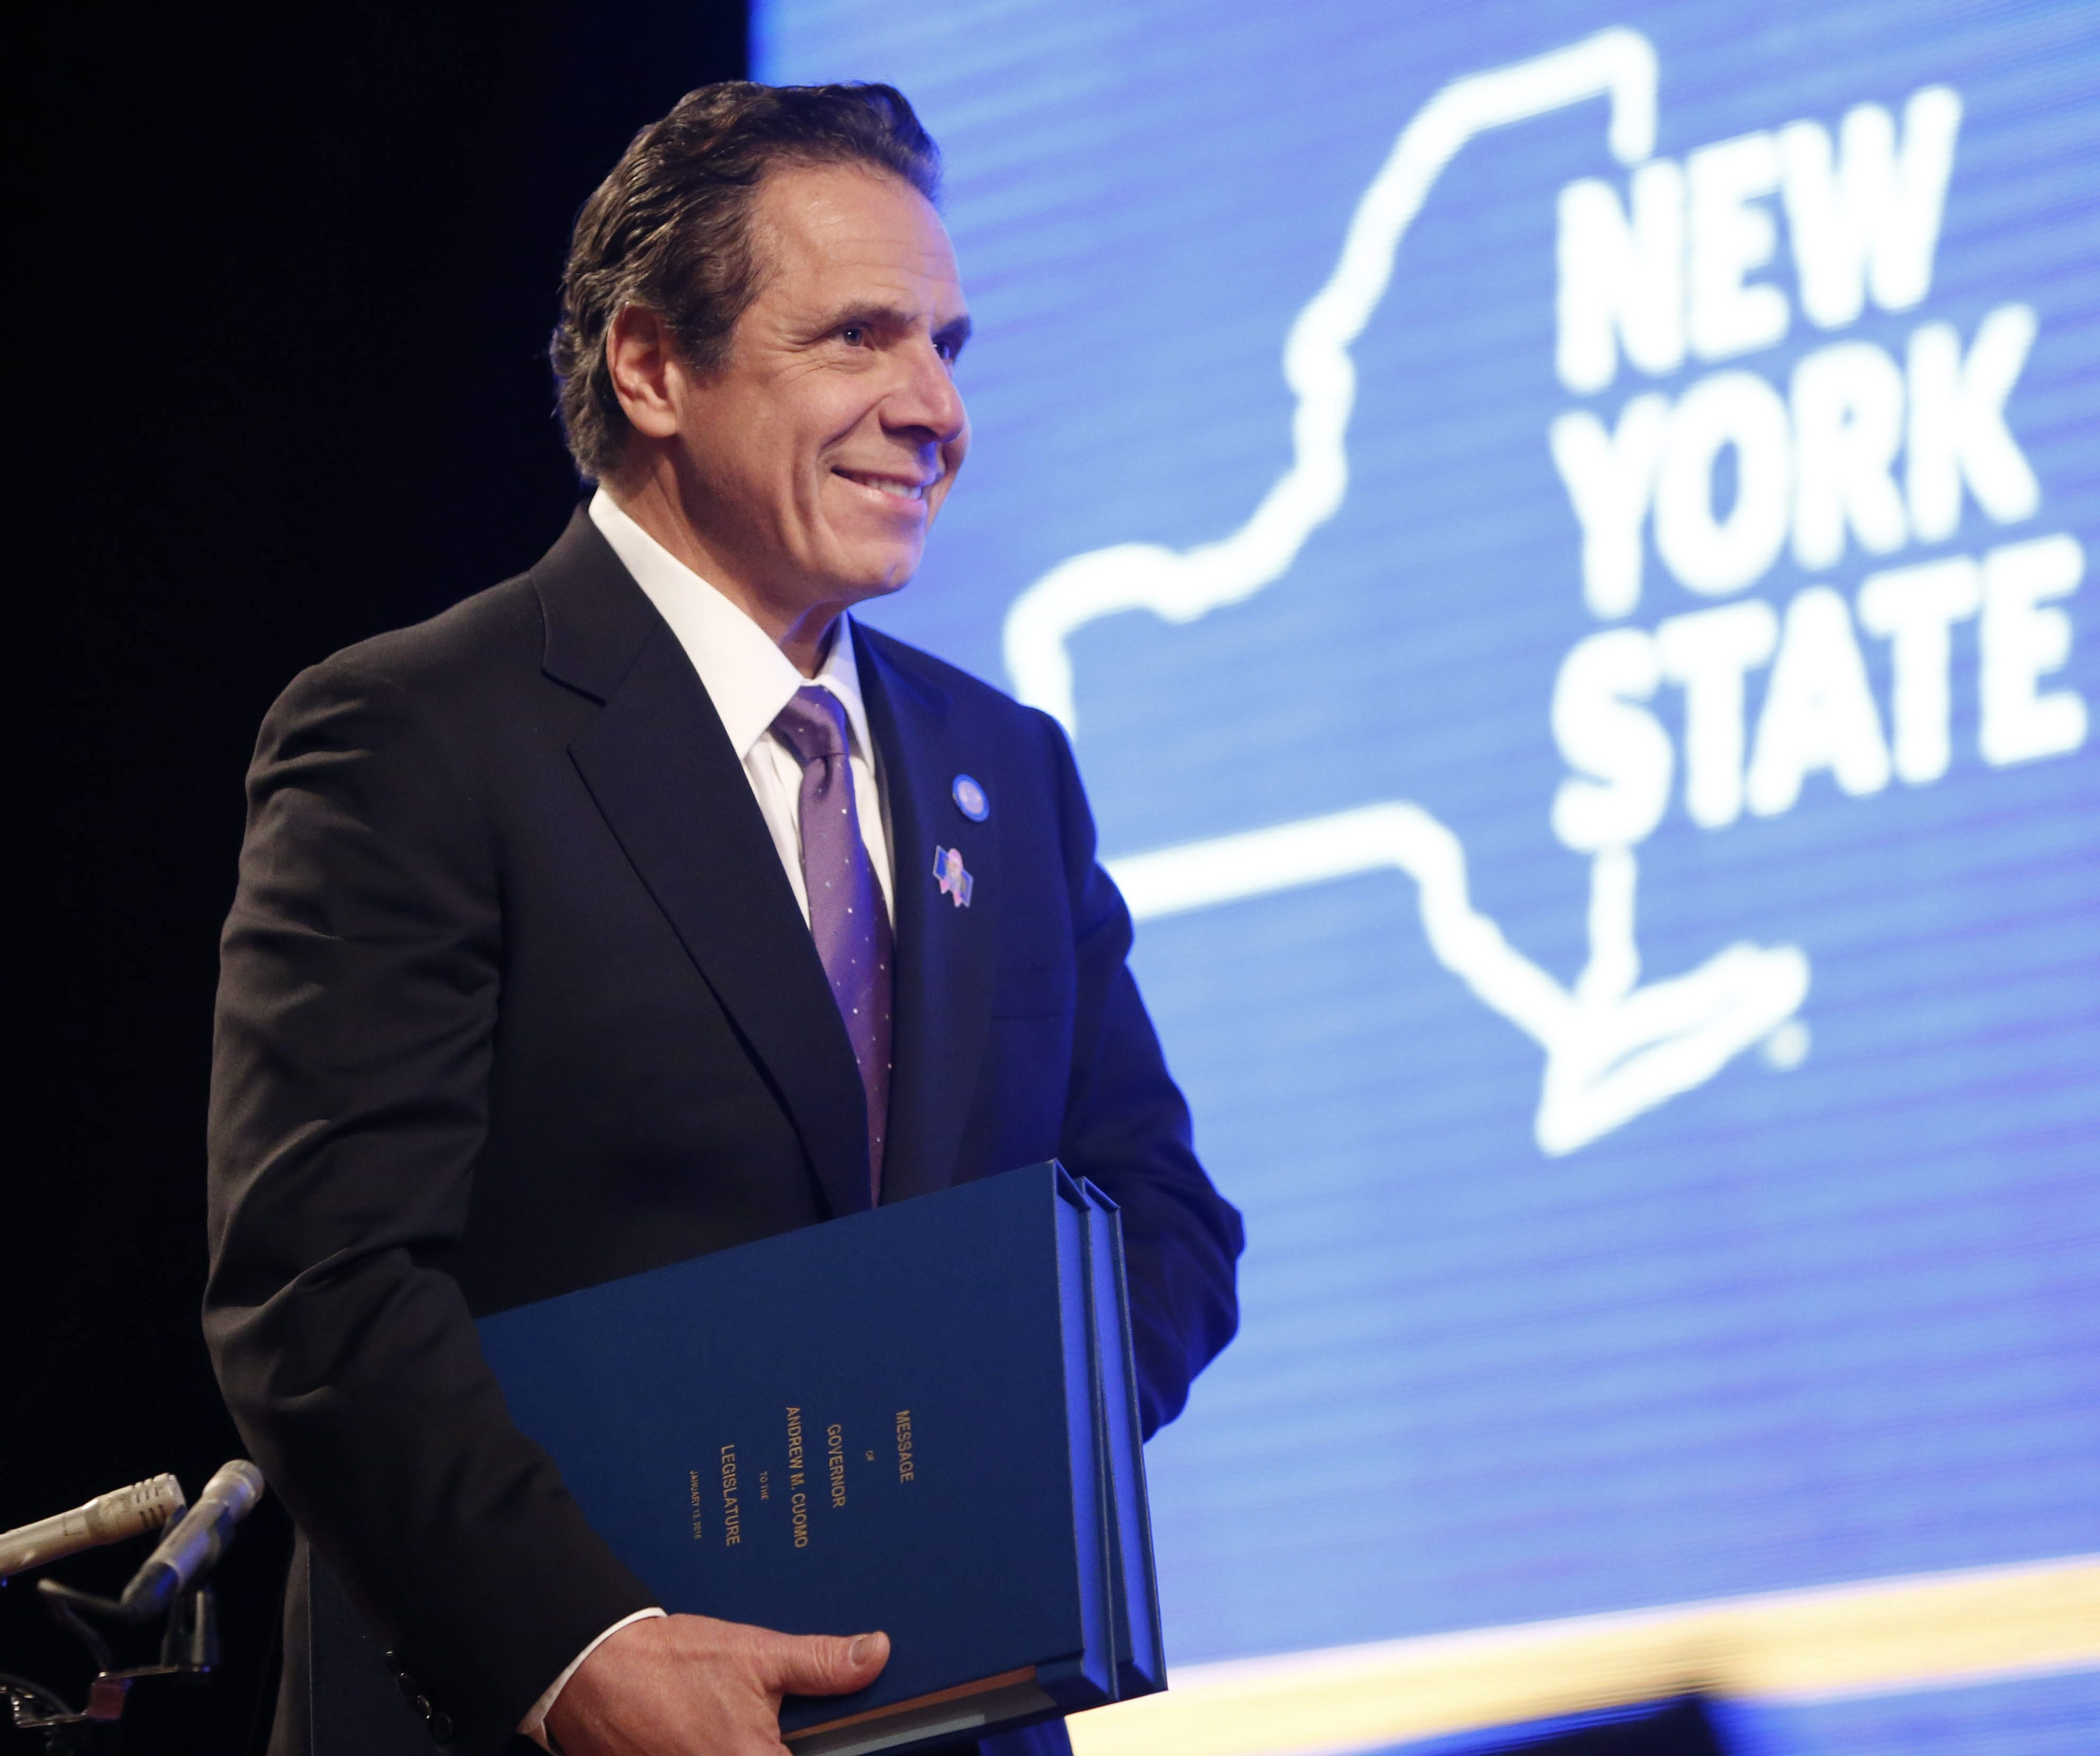 With copies of his budget in hand, New York Gov. Andrew Cuomo takes the stage for the annual State of the State address at the Empire State Plaza Convention Center in Albany, Wednesday, Jan. 13, 2016.  (Derek Gee/Buffalo News)